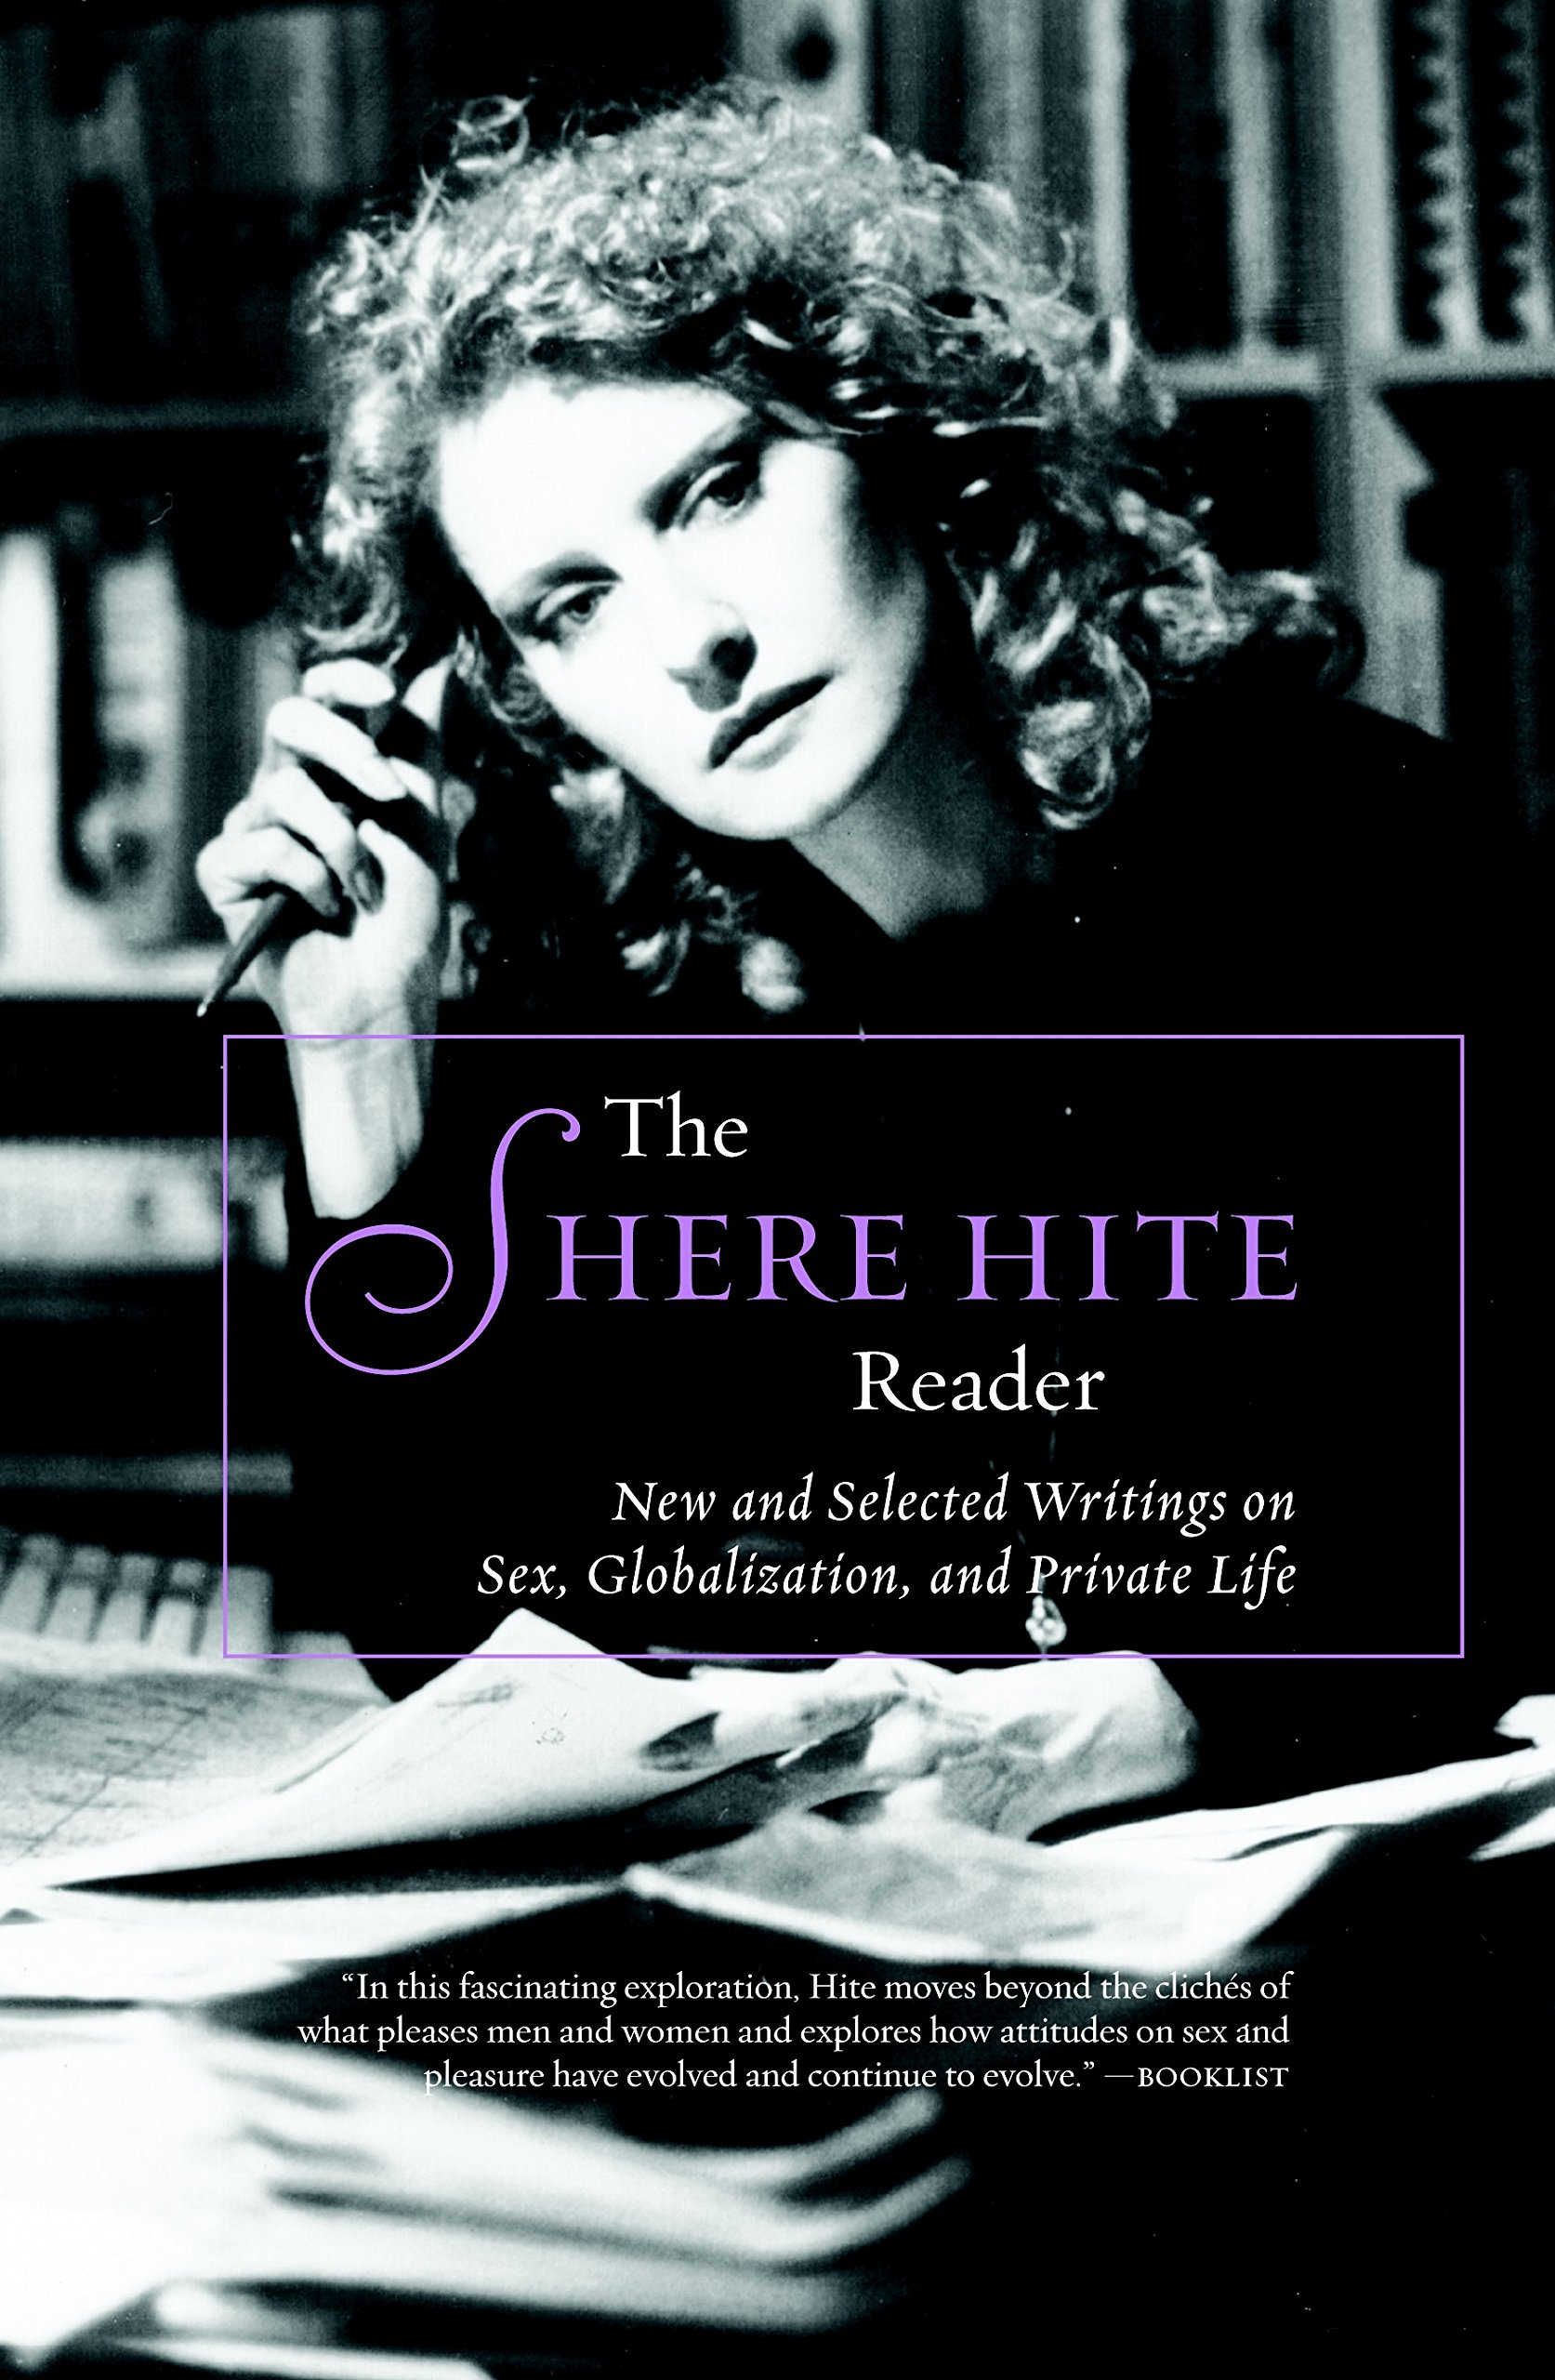 Globalization hite life new private reader selected sex shere writings